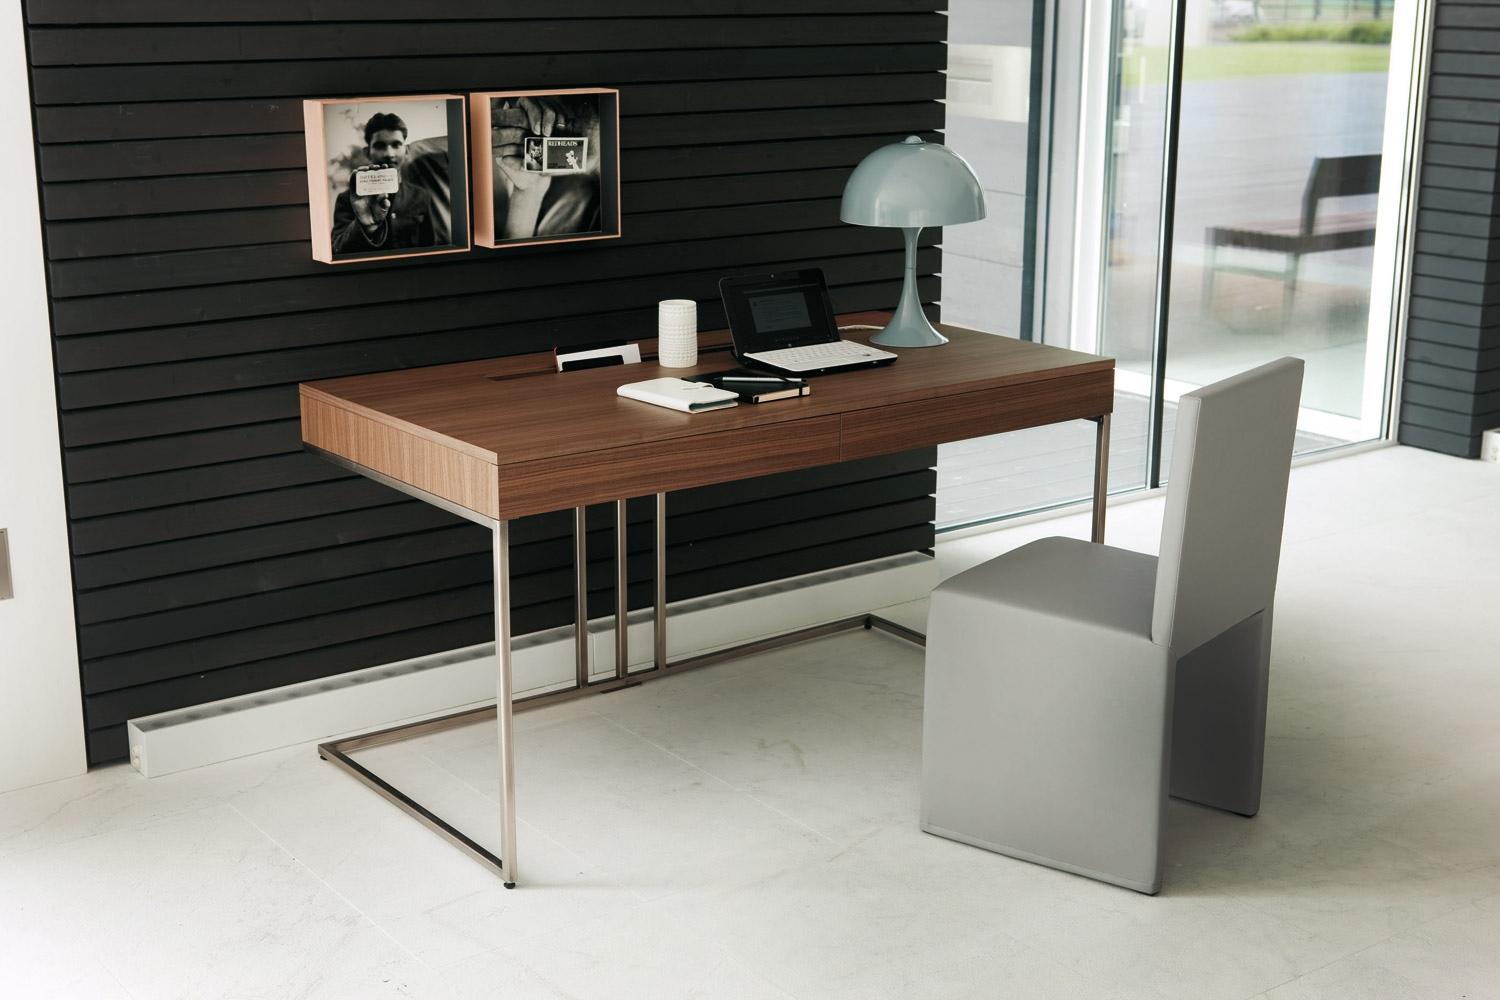 office furniture design images. Office Furniture Design Images I